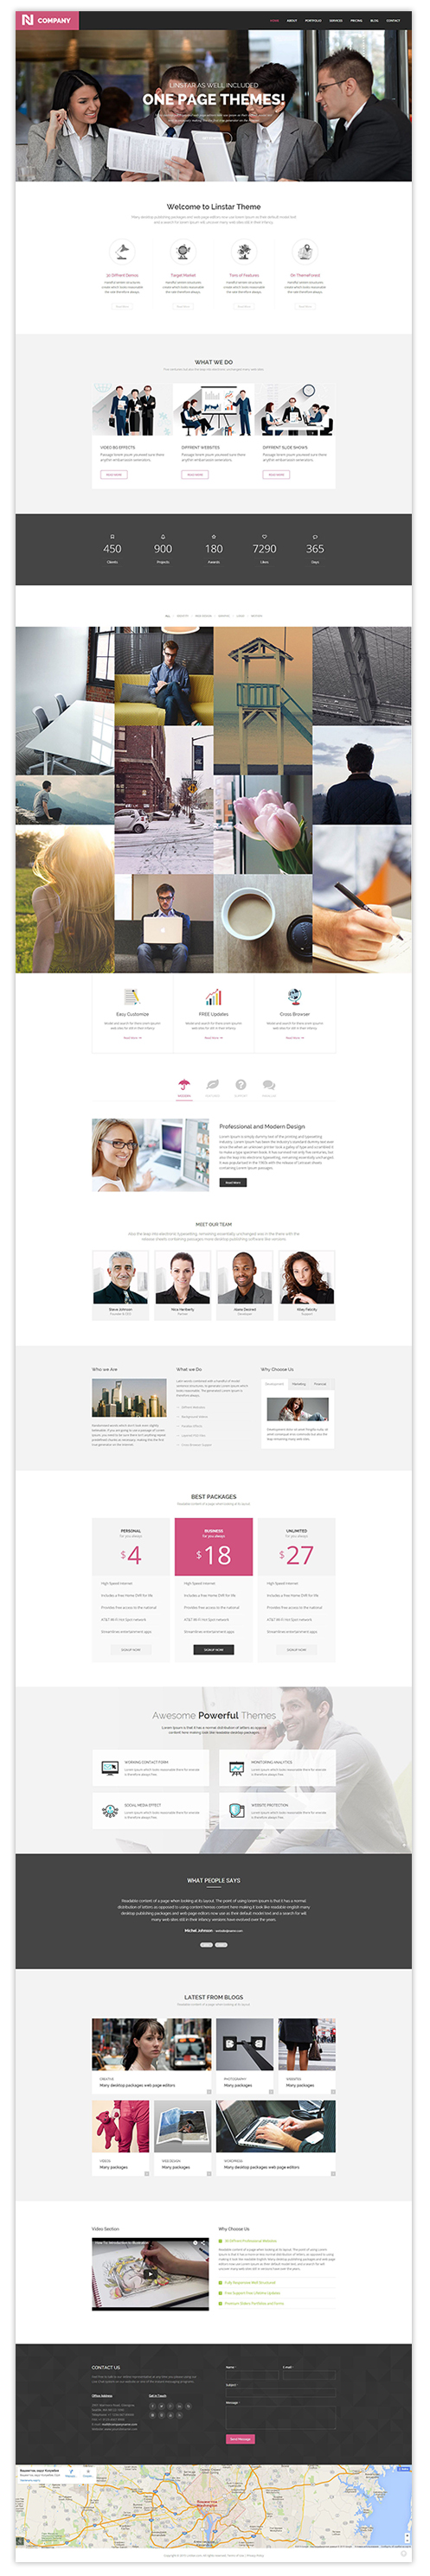 Landing Page. Business